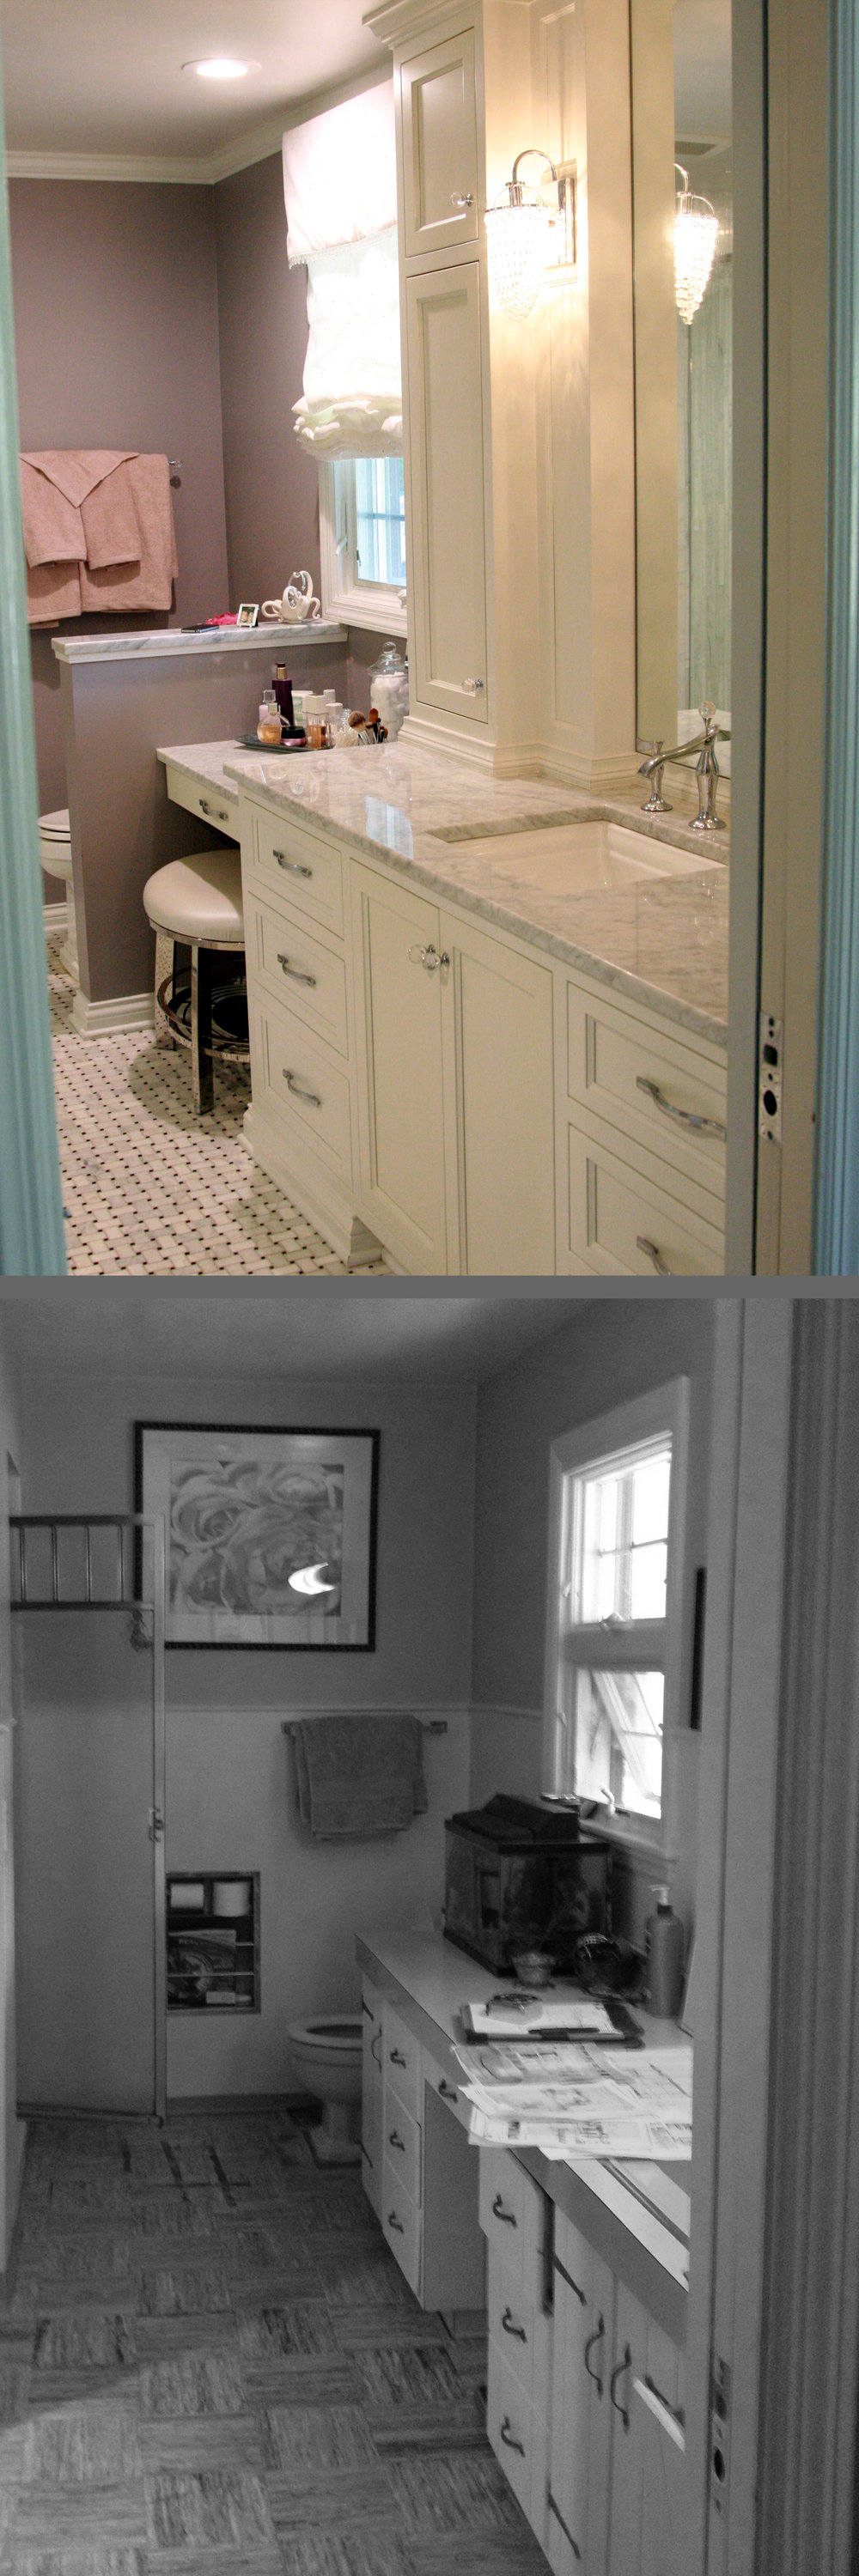 before/after bathroom remodel